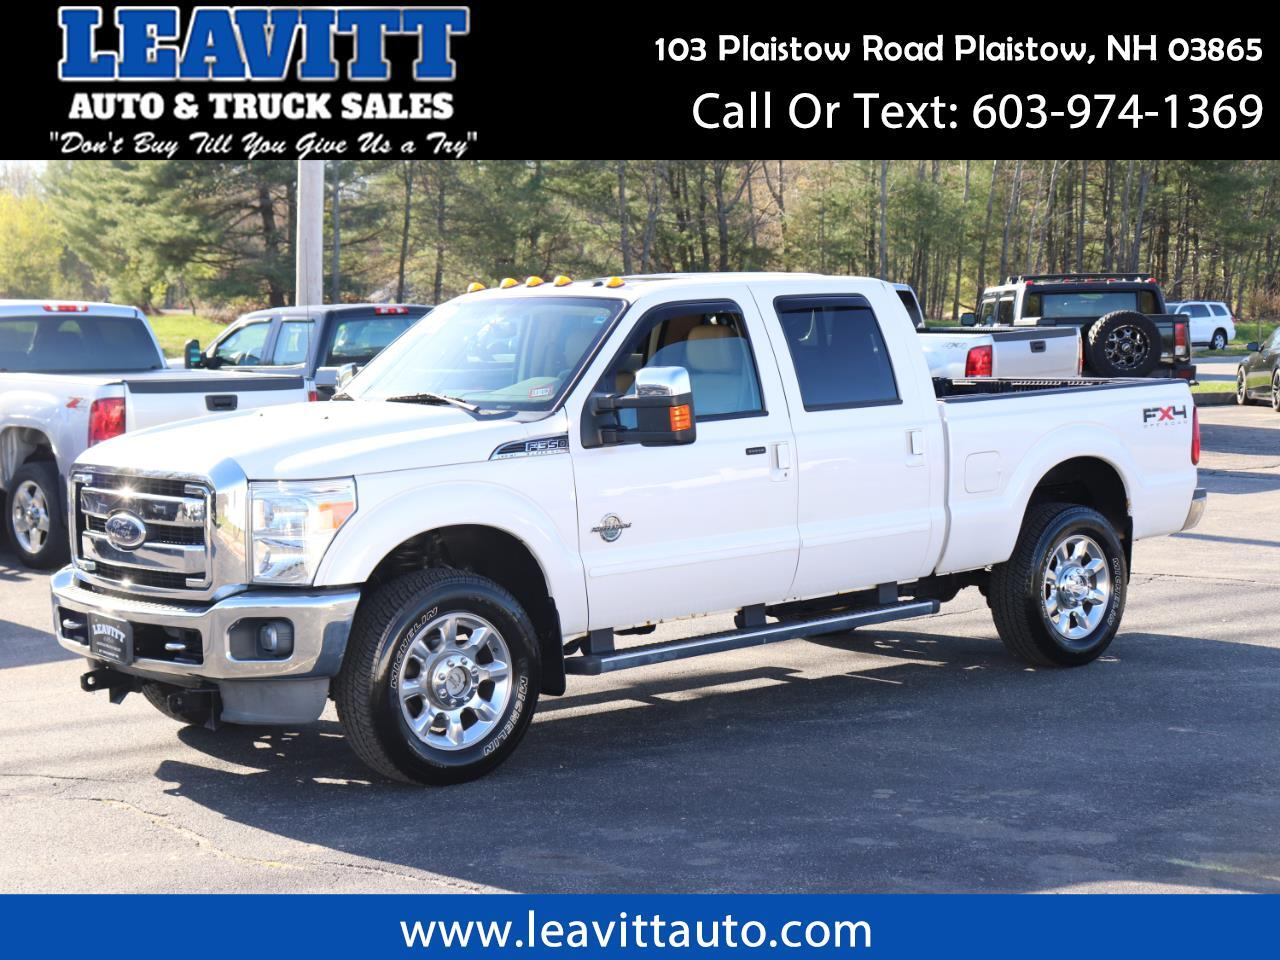 2011 Ford F-350 SD LARIAT CREW CAB 6.7L POWERSTROKE